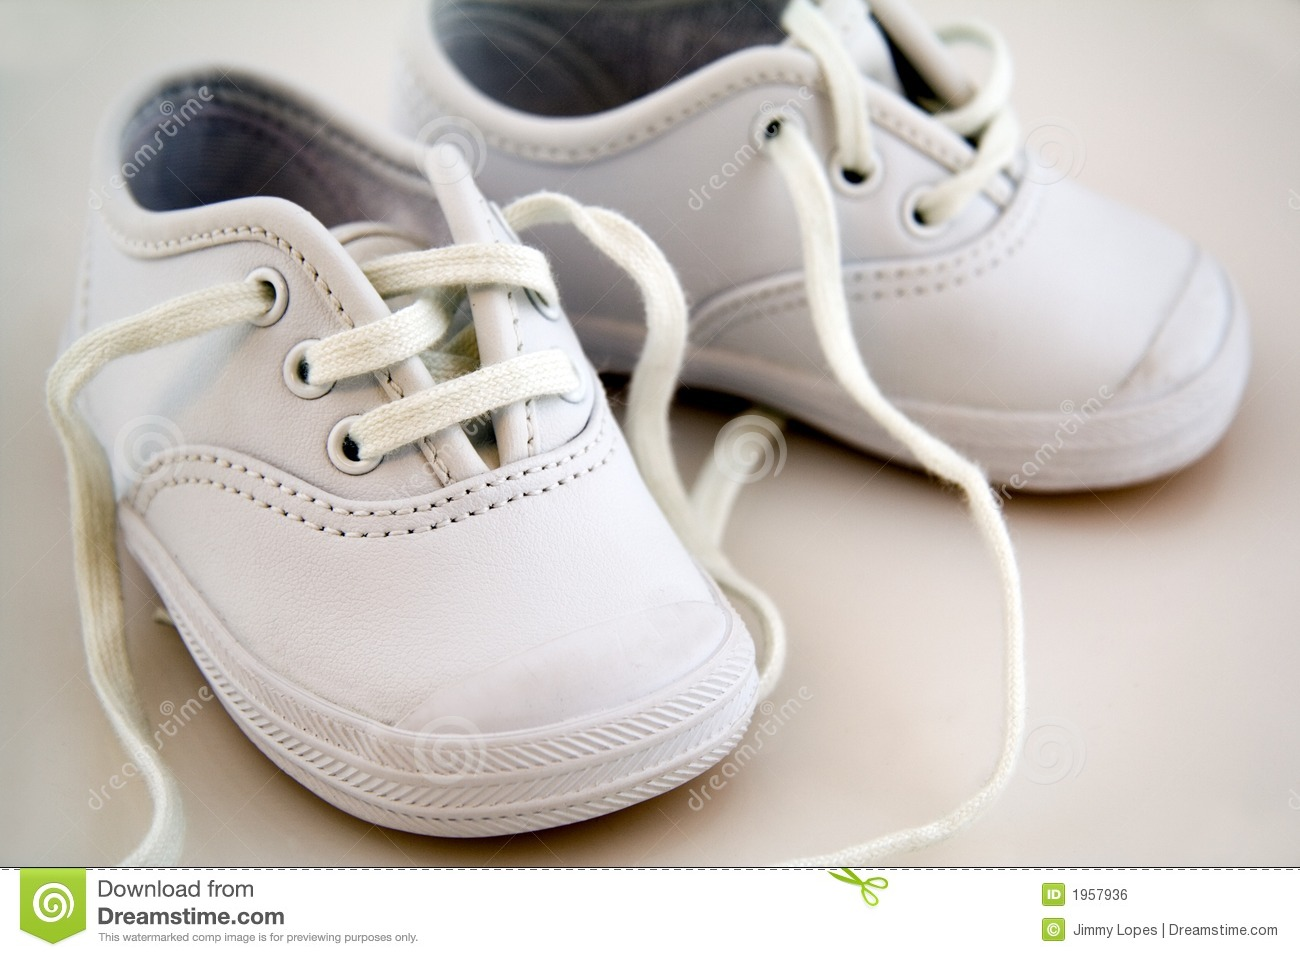 White Little Baby Shoes Royalty Free Stock Image - Image: 1957936